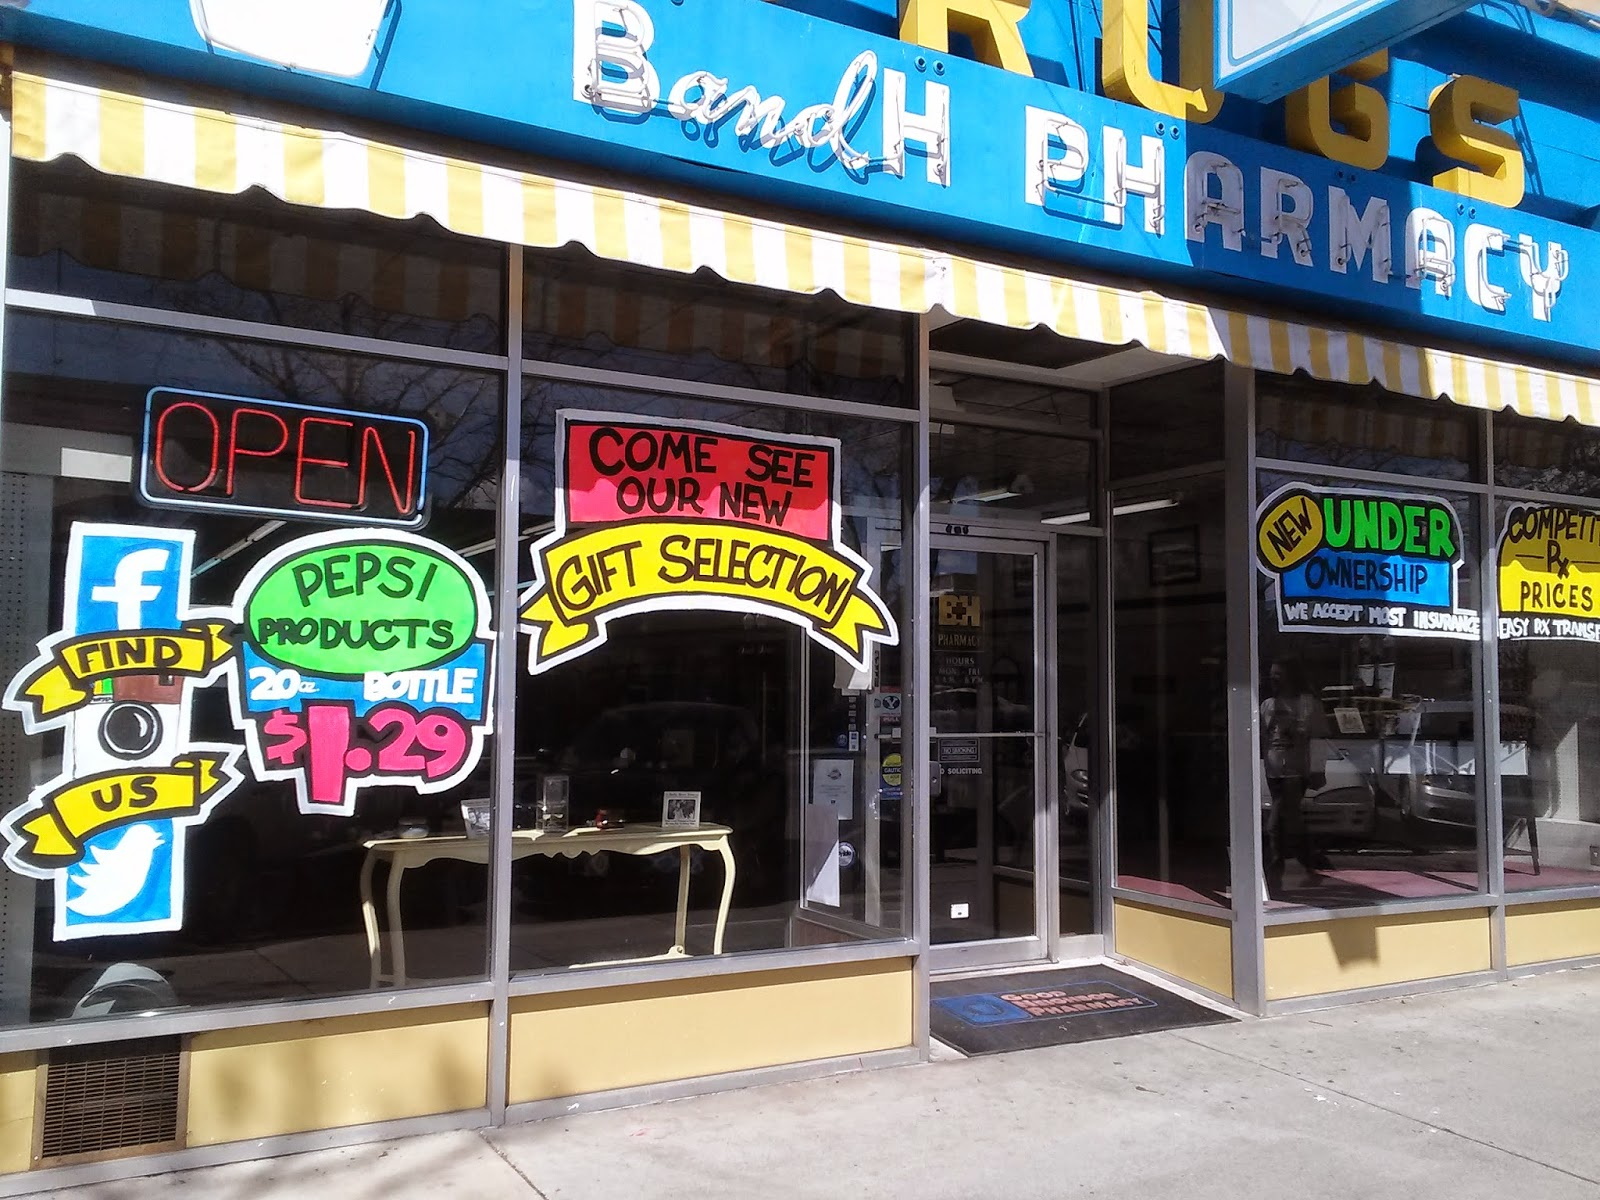 Spring Window Painting - I love what he s done with the place he s added a new section for gifts and jewelry and really cute stuff he also told me he s planning on installing a